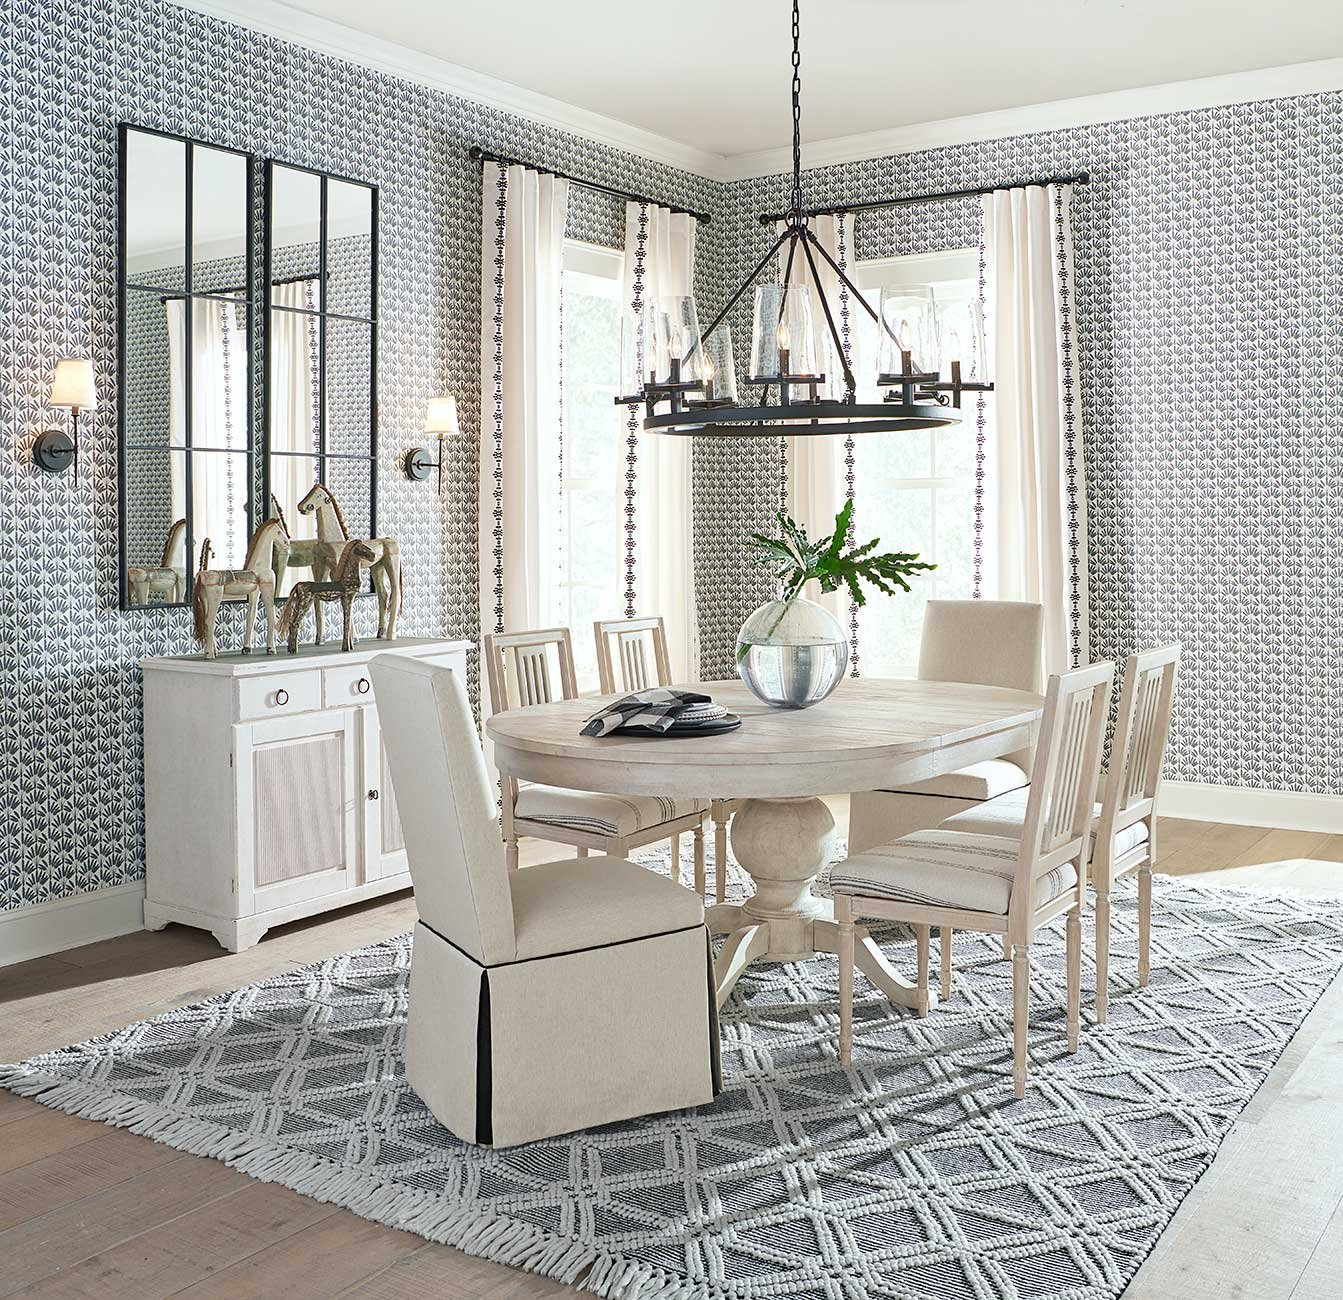 How Much Does it Cost to Decorate a Dining Room 2020